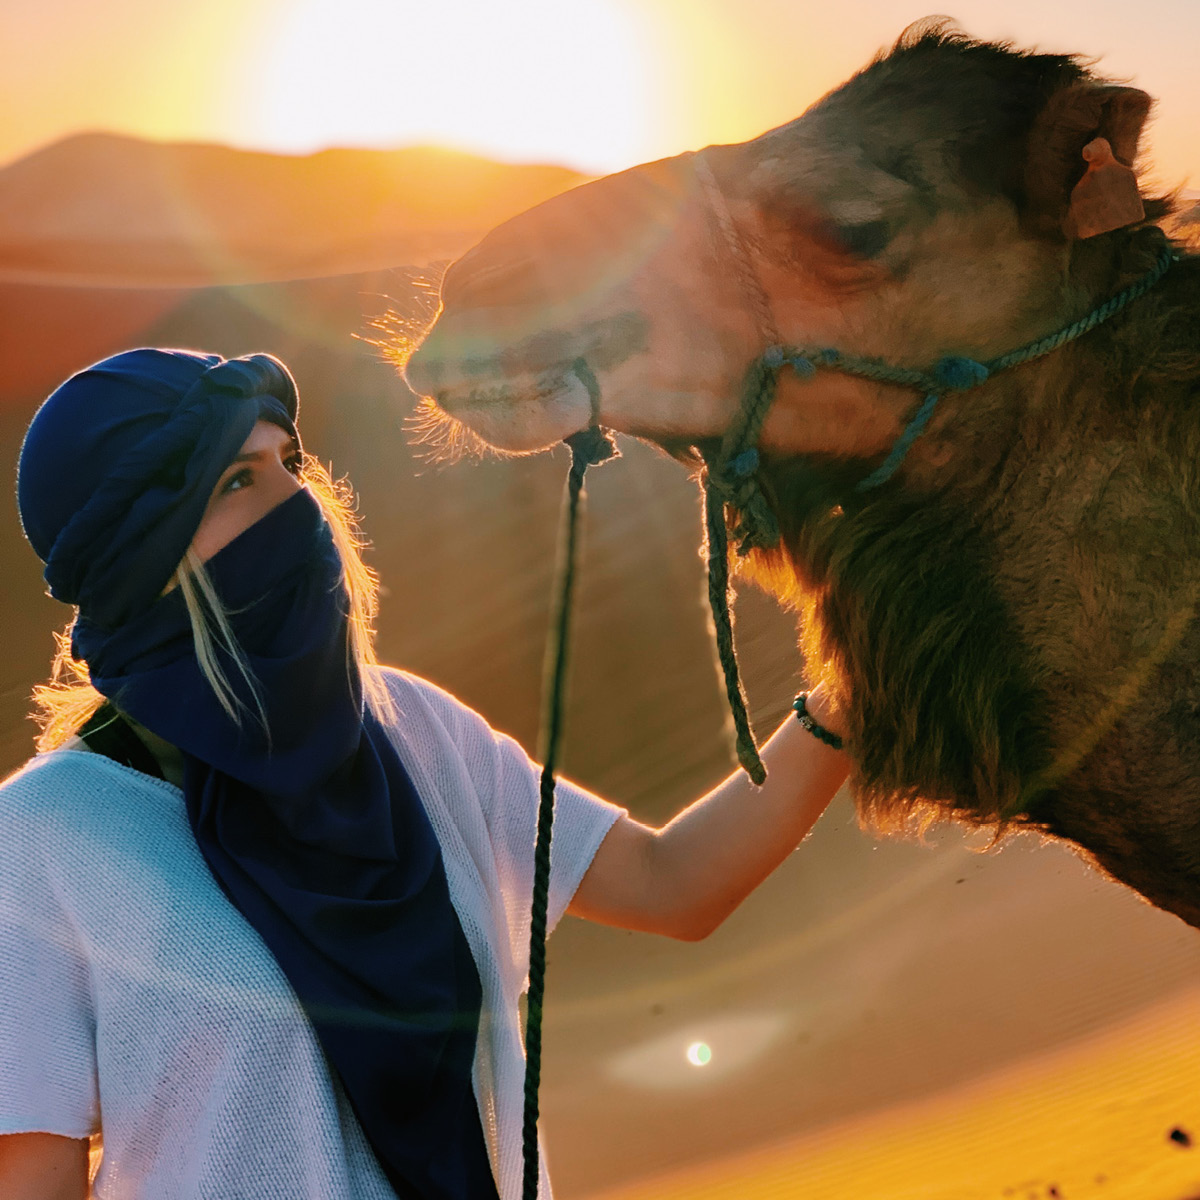 A student looks at a camel and poses for a photo against sun and sand.